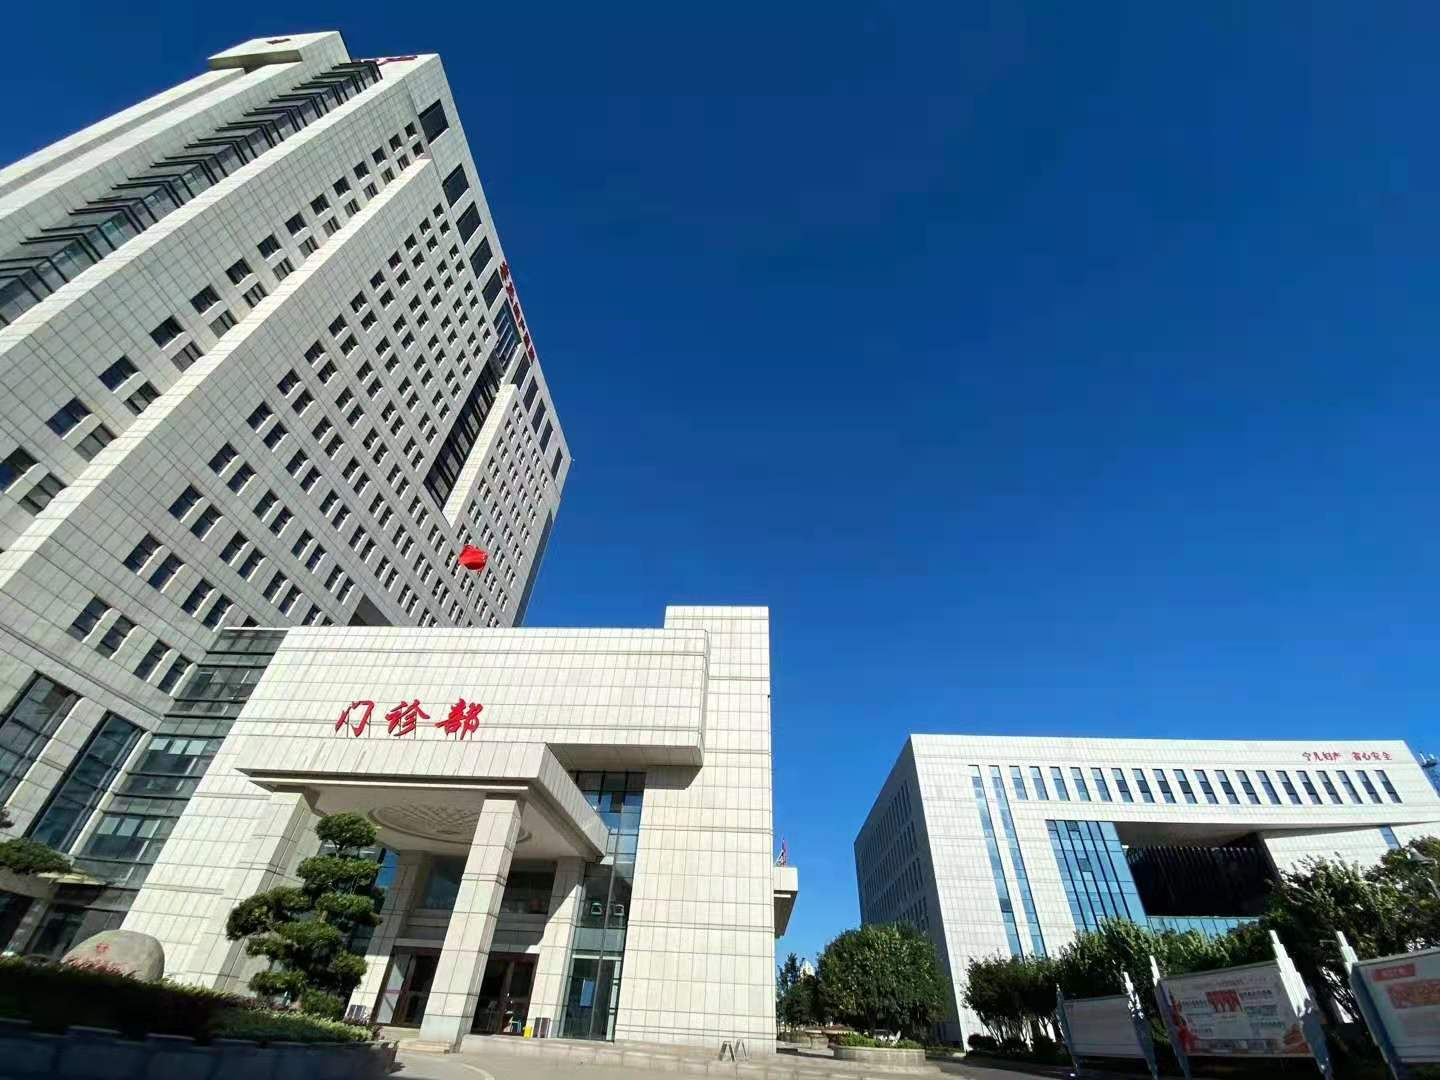 Changsha_Ninger_Maternity_Hospital2.jpg